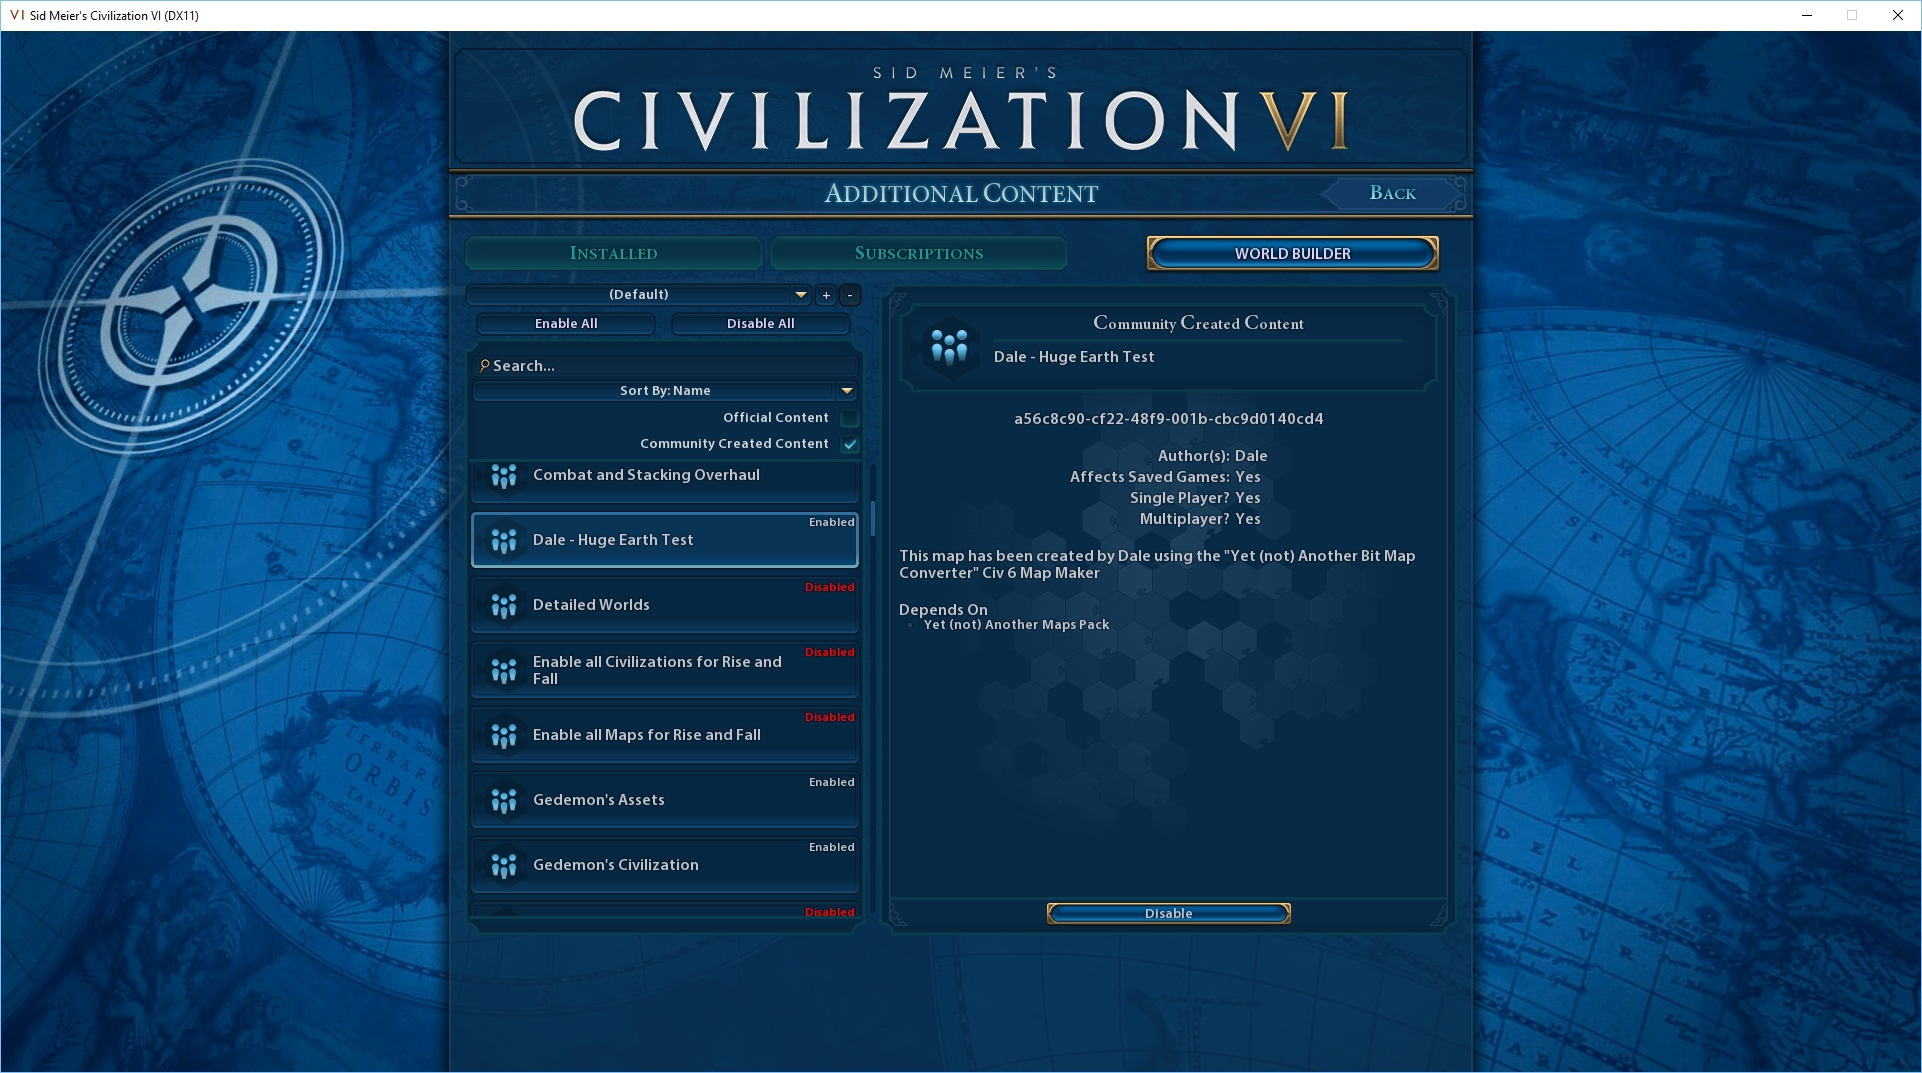 How to import a Civ5 map to Civ6 using Zobtzler's YnABMC and YnAMP